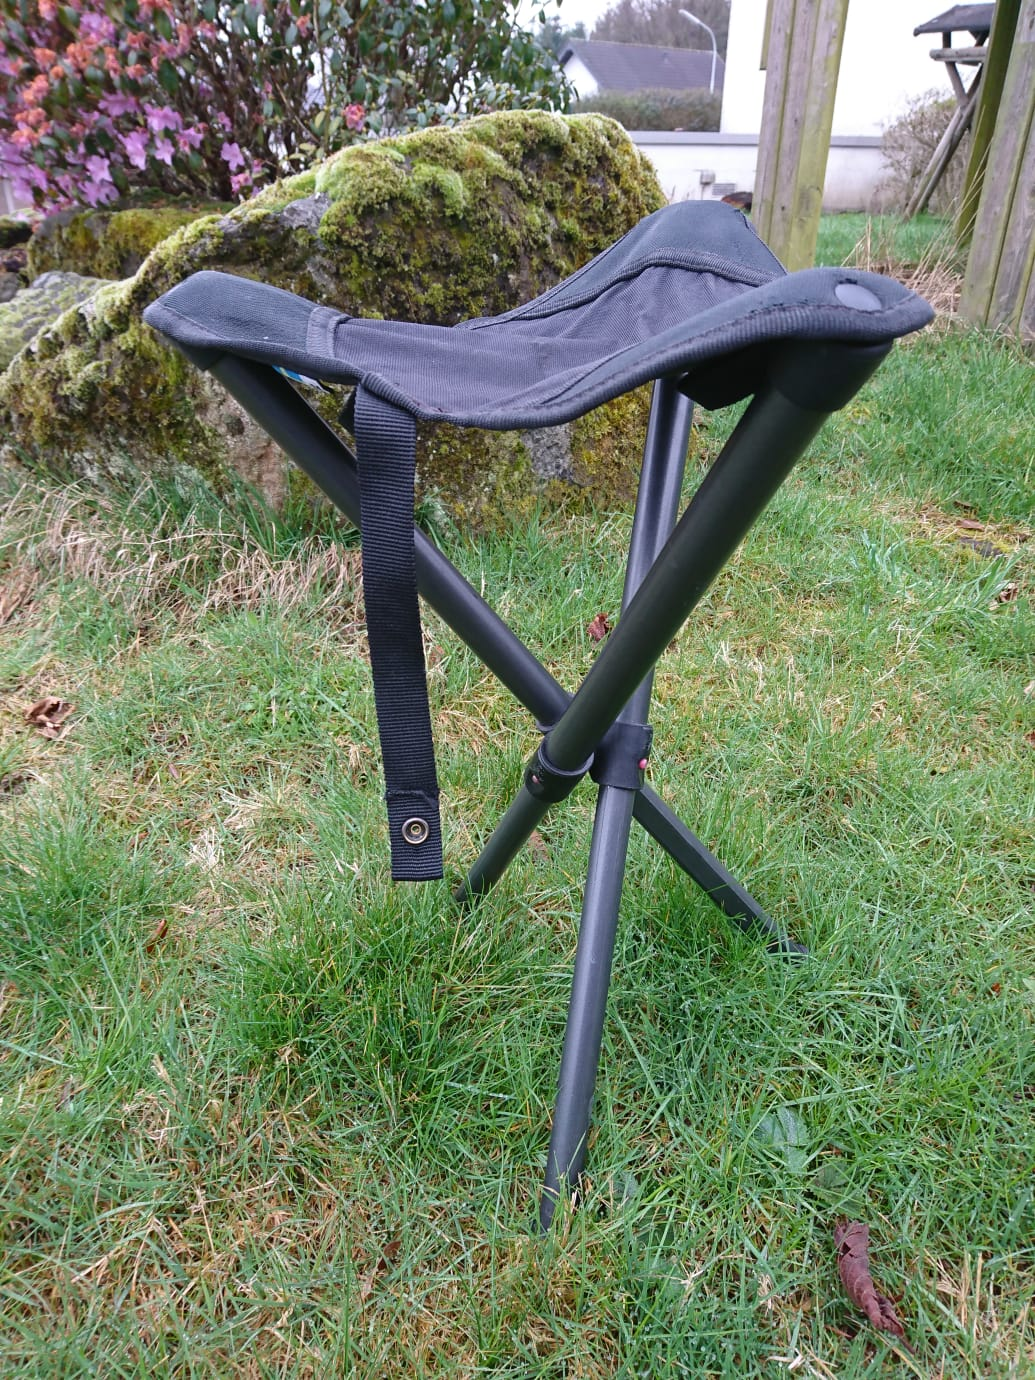 Walkstool / Tripod Stool